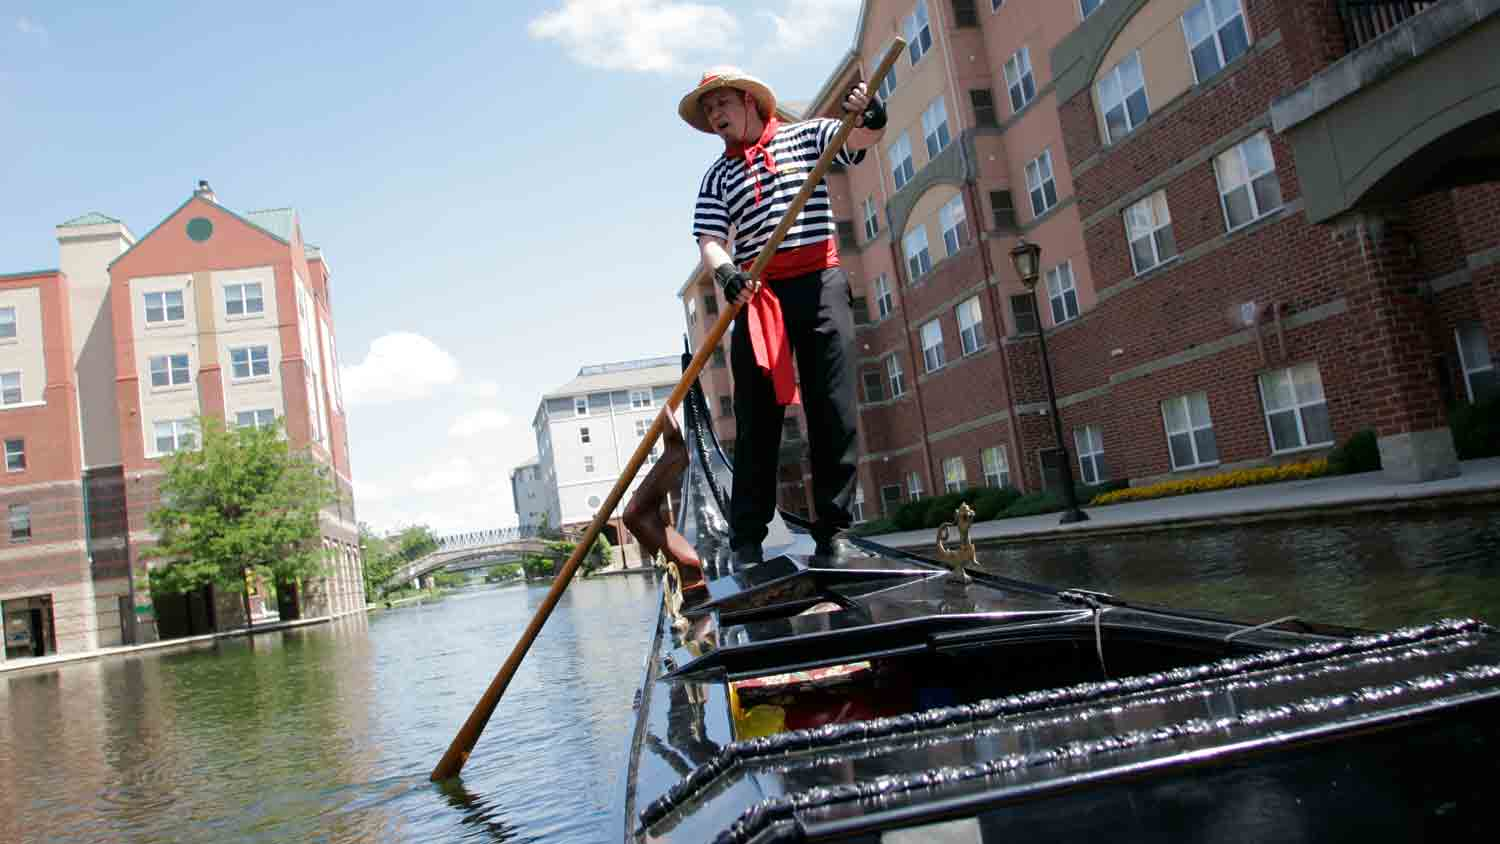 Old world gondoliers 2